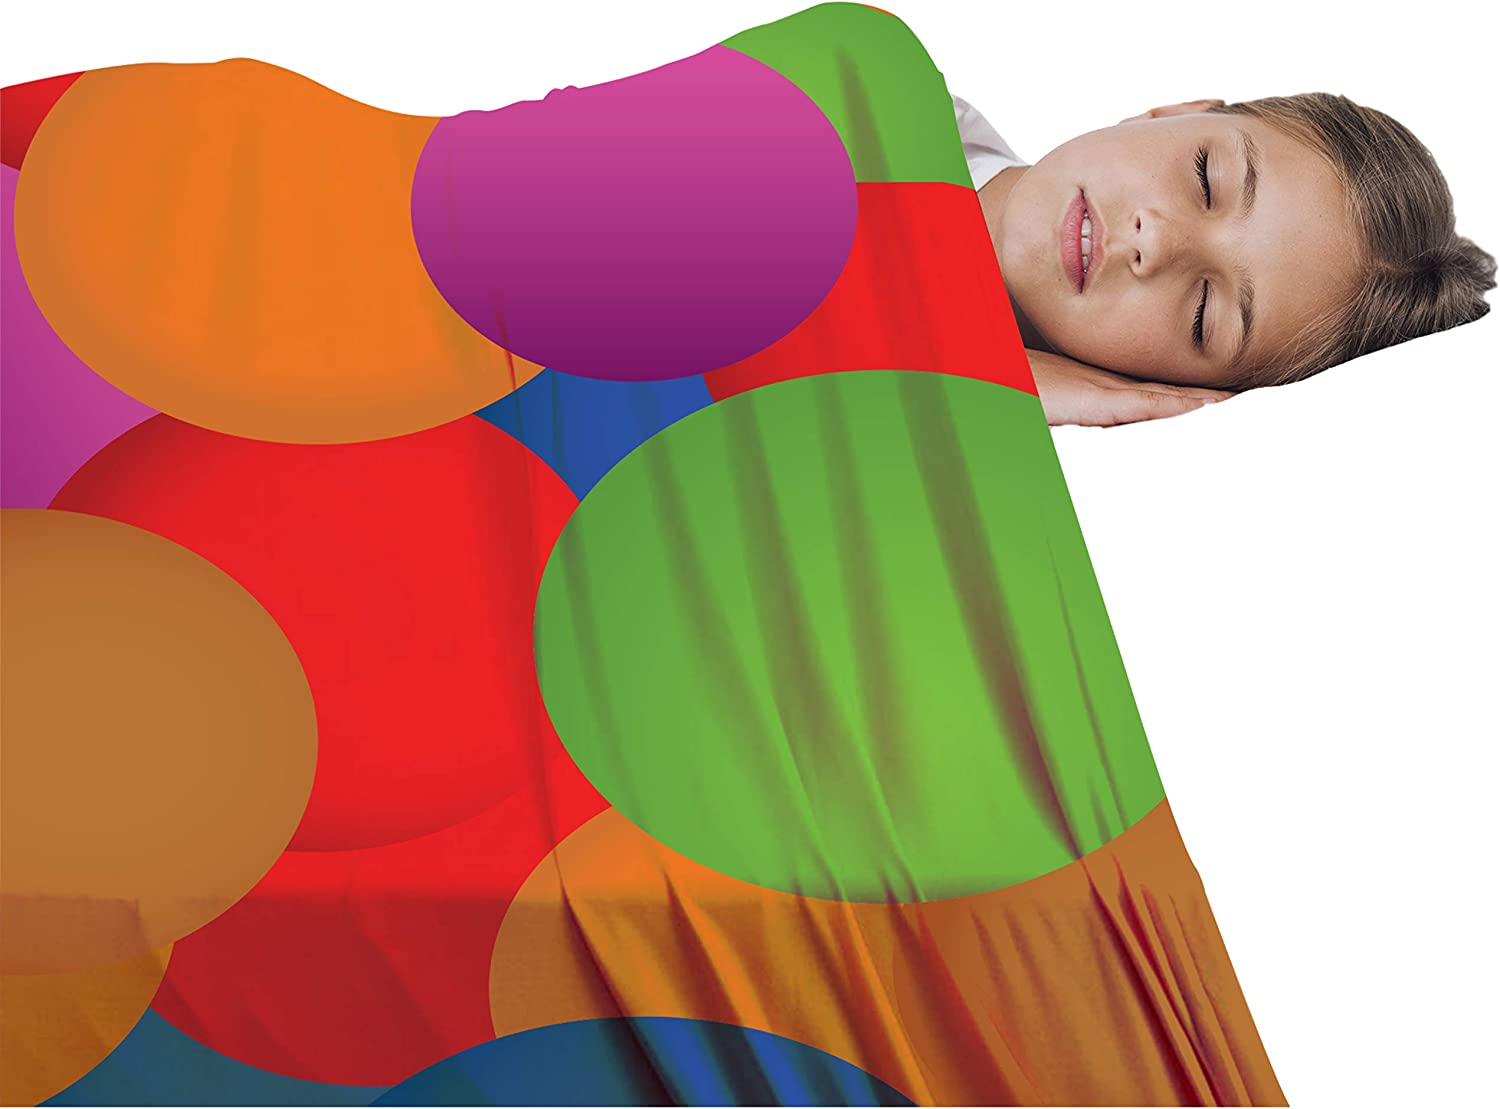 Sensory In stock Blanket for Kids - Sales Bedding Comfortable Cud Compression